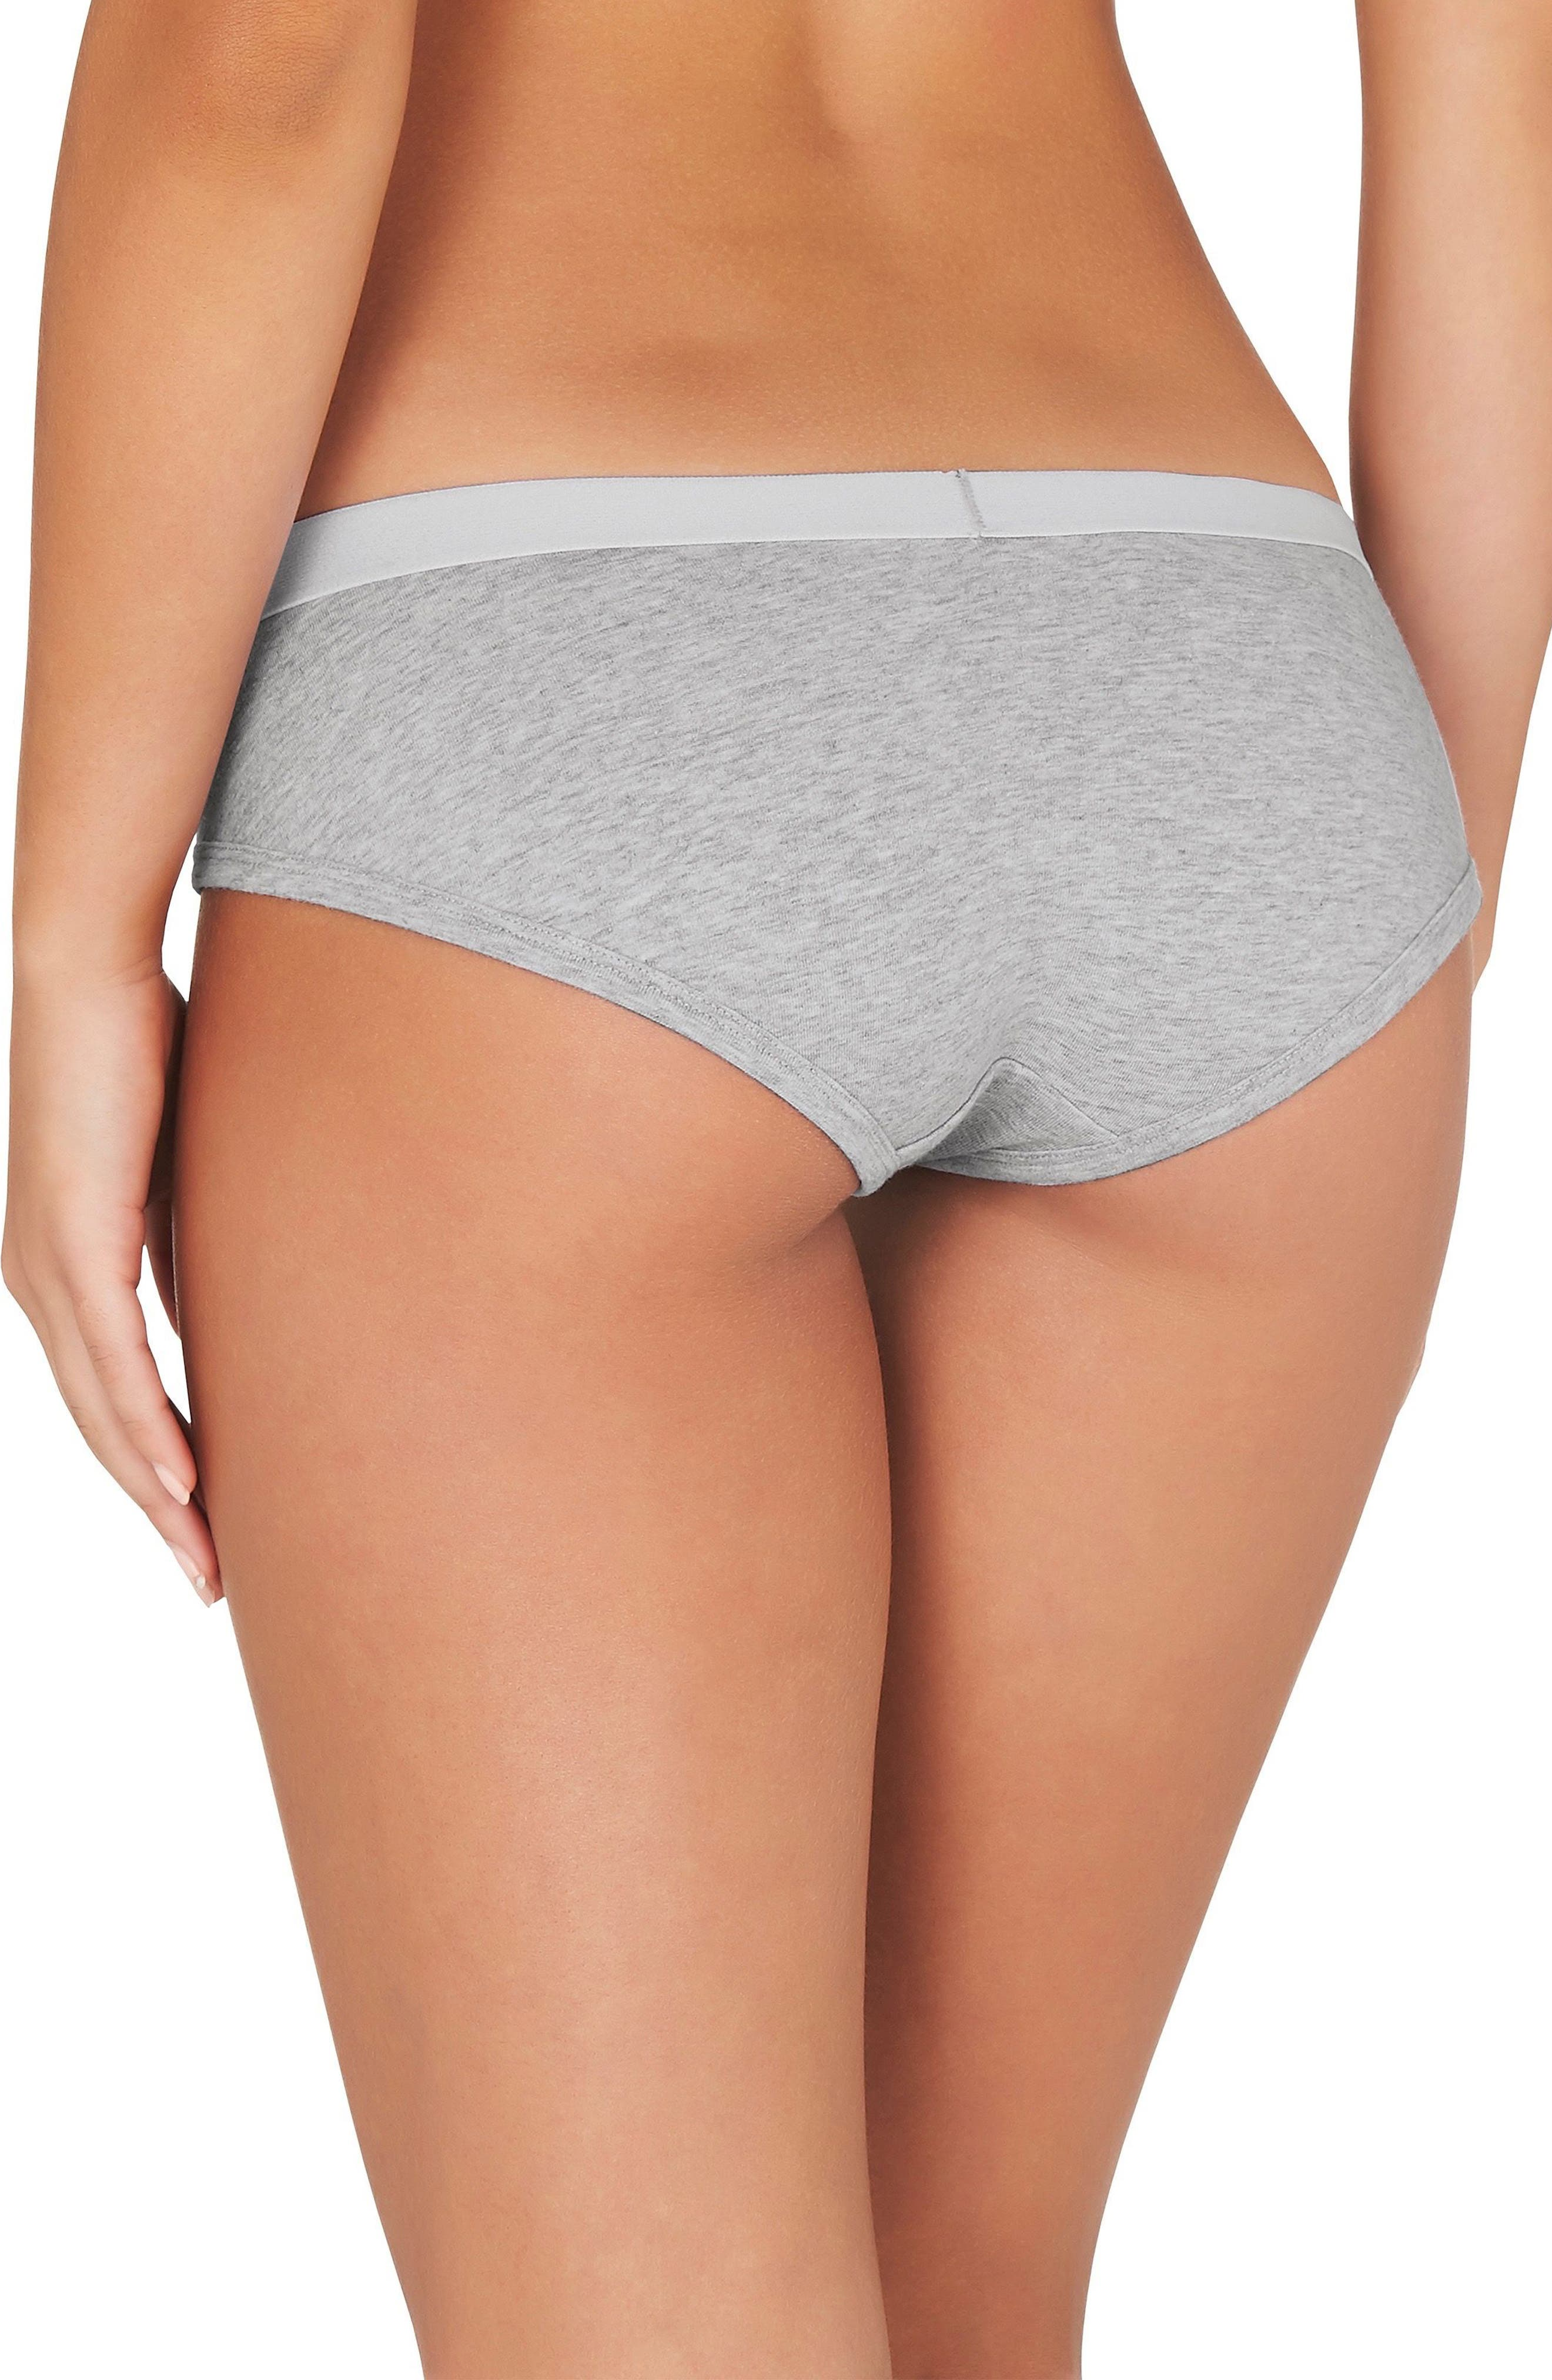 Monday to Sunday 7-Pack Stretch Organic Cotton Hipster Panties,                             Alternate thumbnail 3, color,                             Grey Marle